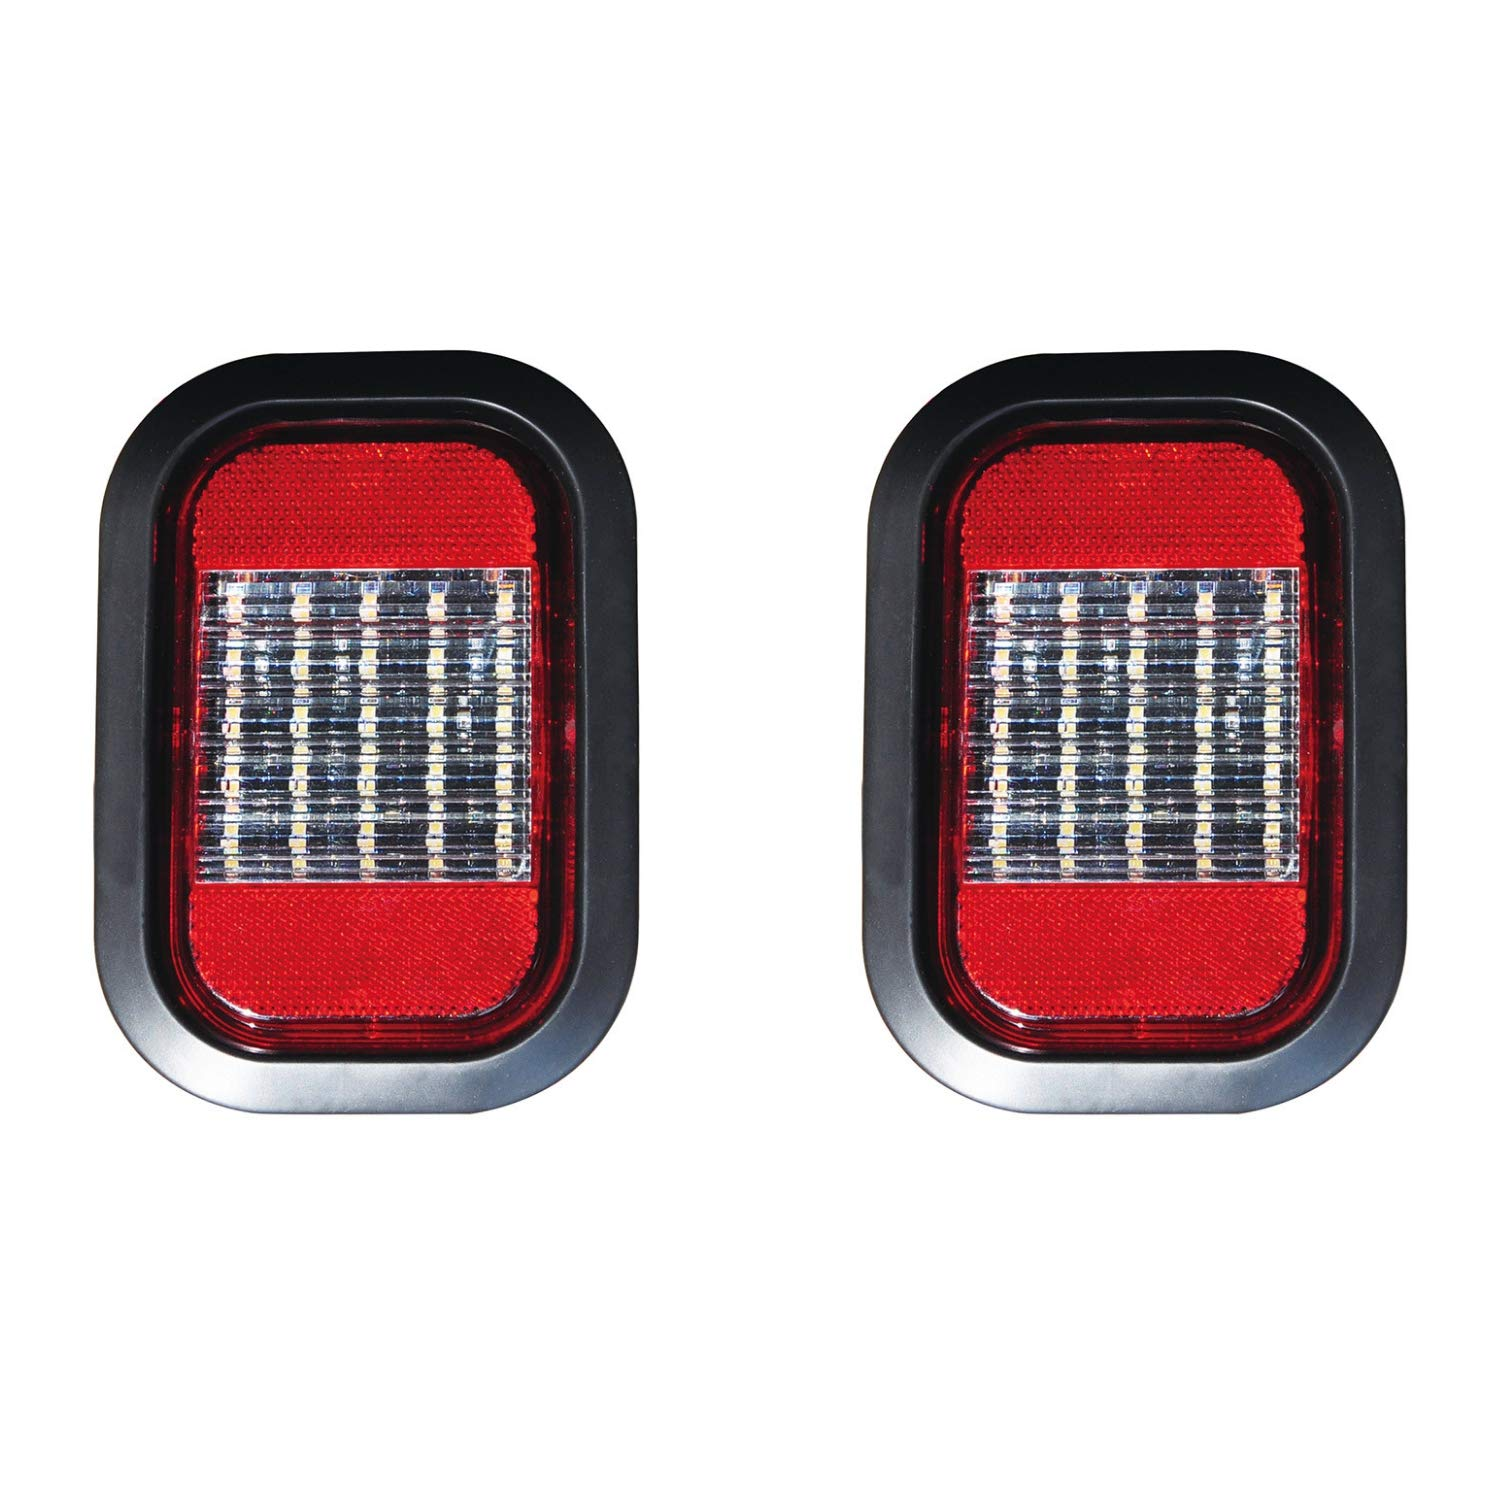 """Qty 2-5x3"""" Clear/White Rectangle 25 LED Reverse/Backup Truck Trailer Light with Red Reflector Grommet & Pigtail"""